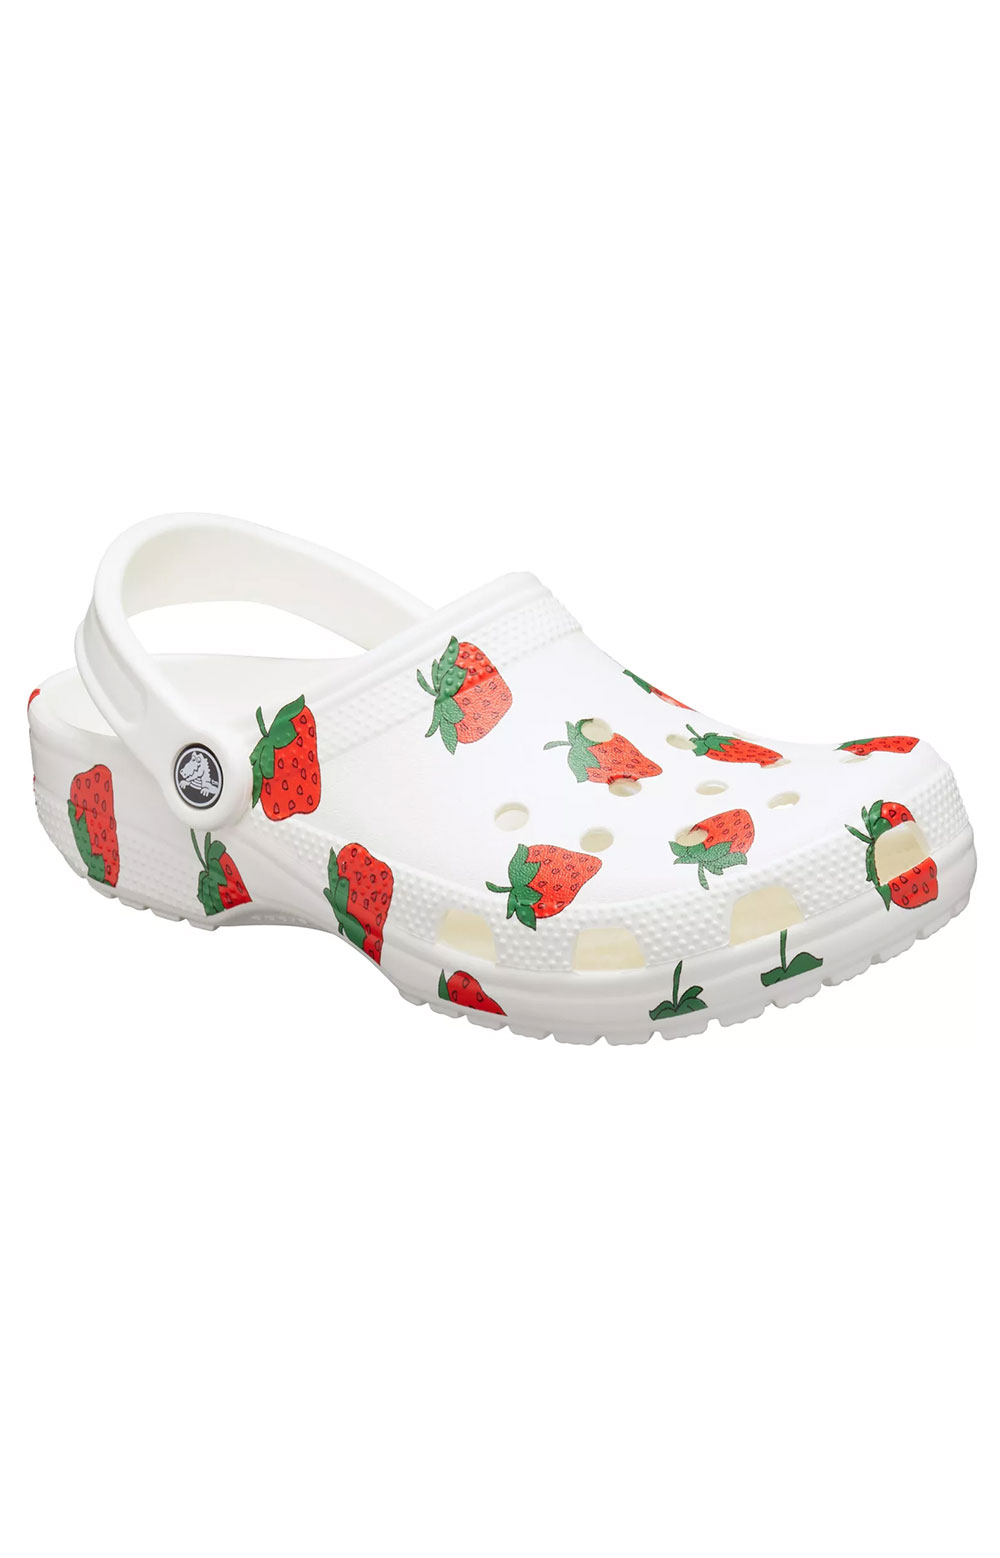 Classic Vacay Vibes Clogs - White